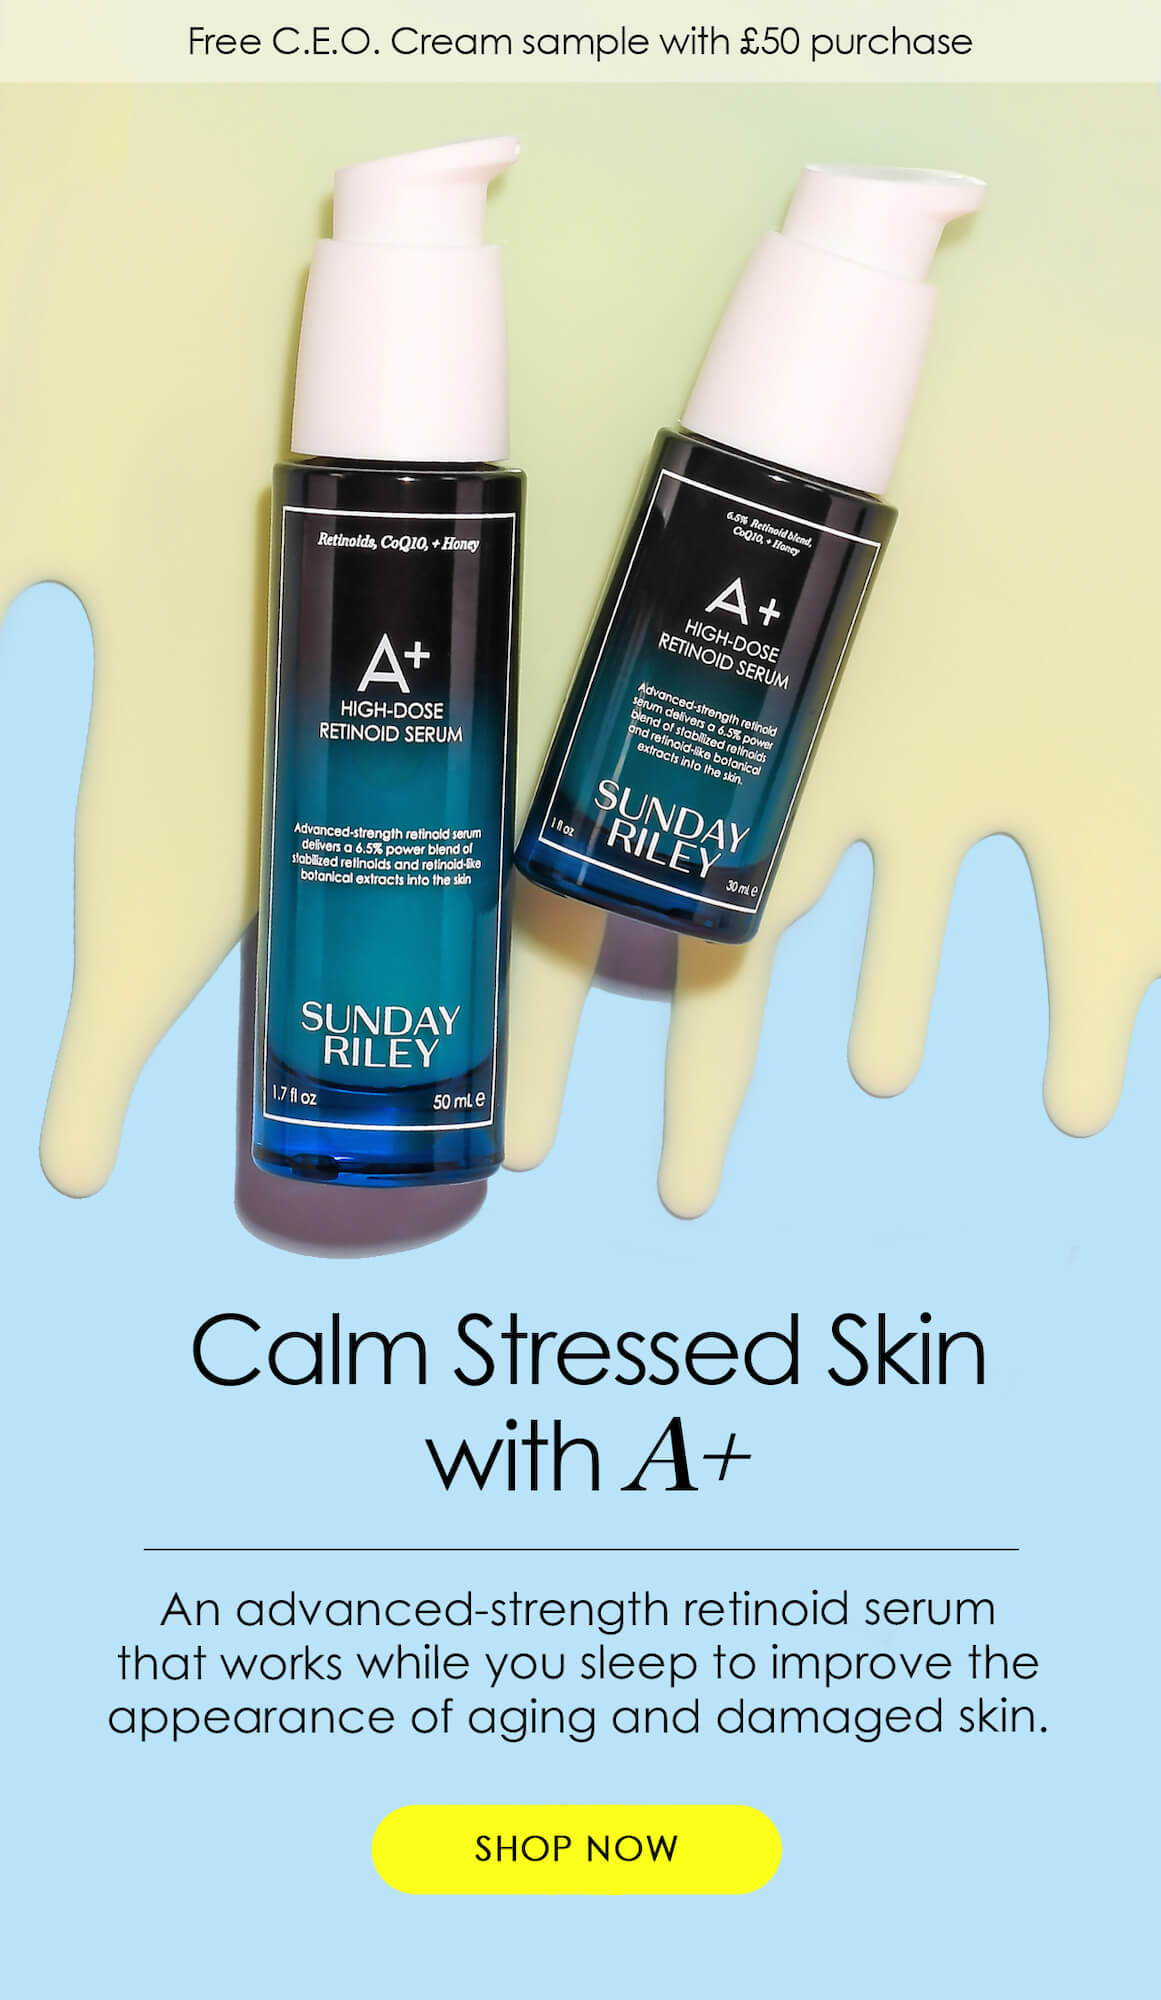 Calm Stressed Skin with A+